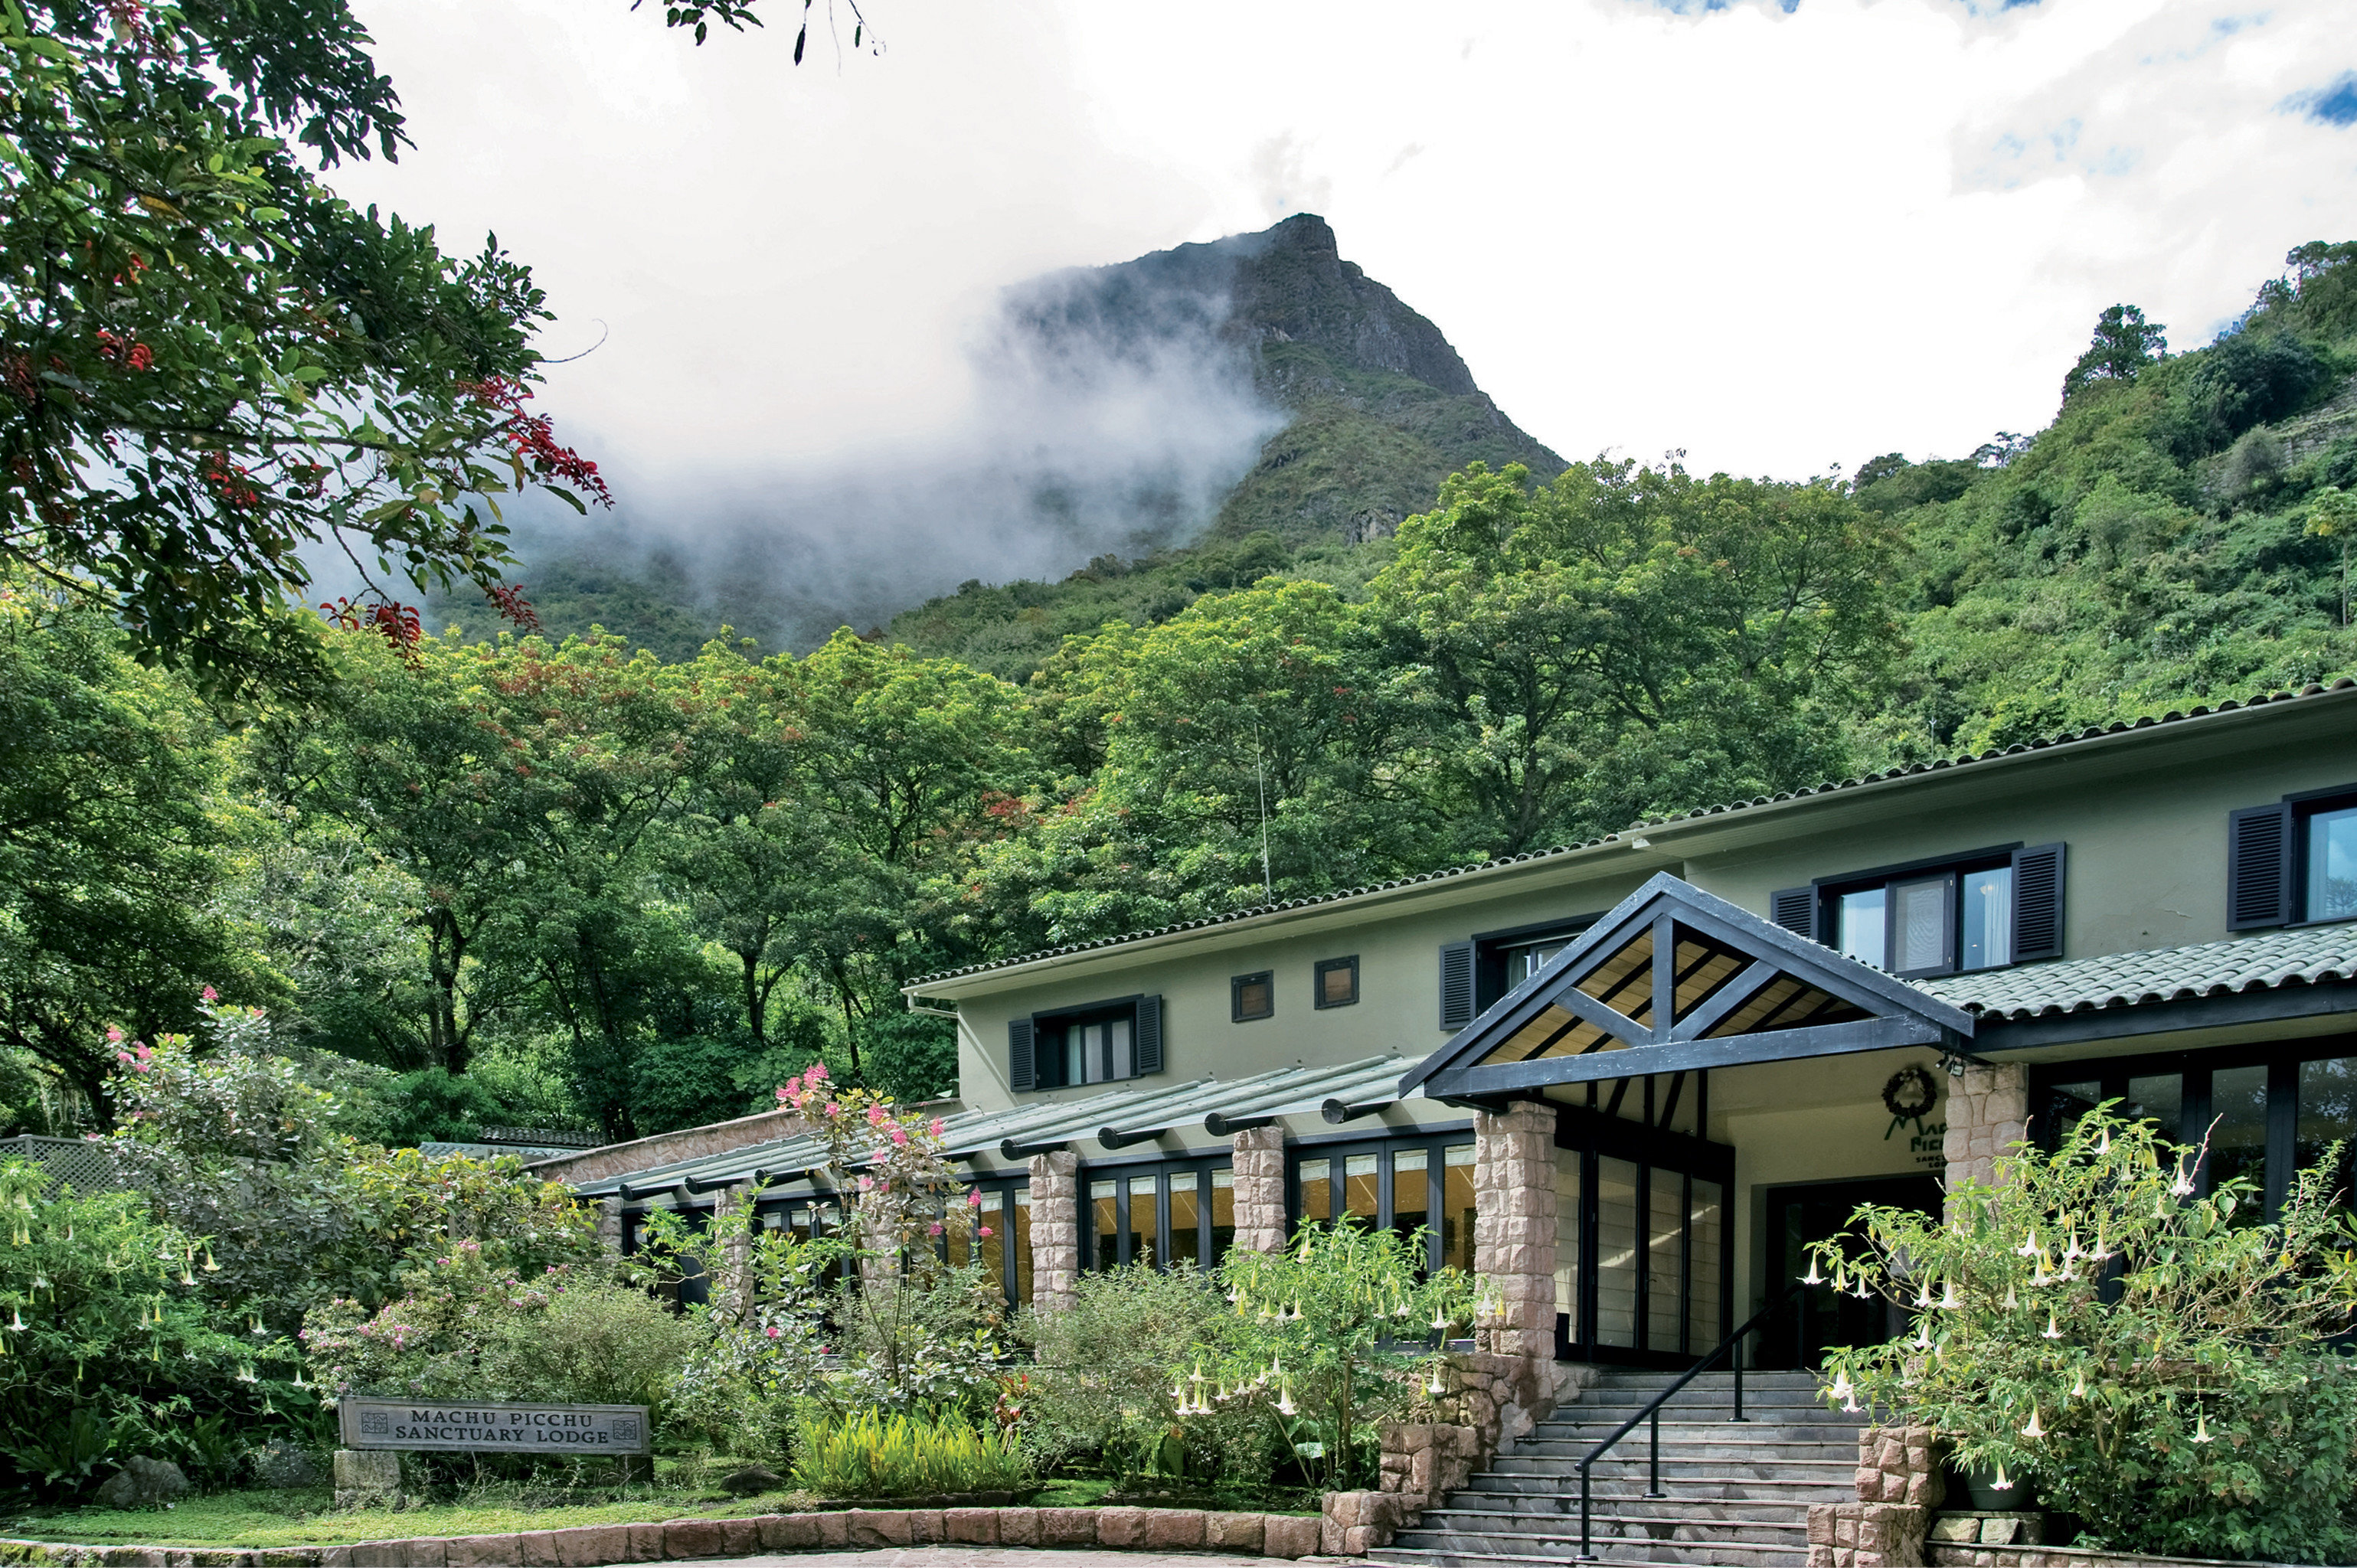 Exterior Grounds Jungle Lodge Natural wonders Nature Outdoor Activities Outdoors Scenic views Wildlife tree mountainous landforms house transport residential area mountain River rural area mountain range landscape Village valley surrounded